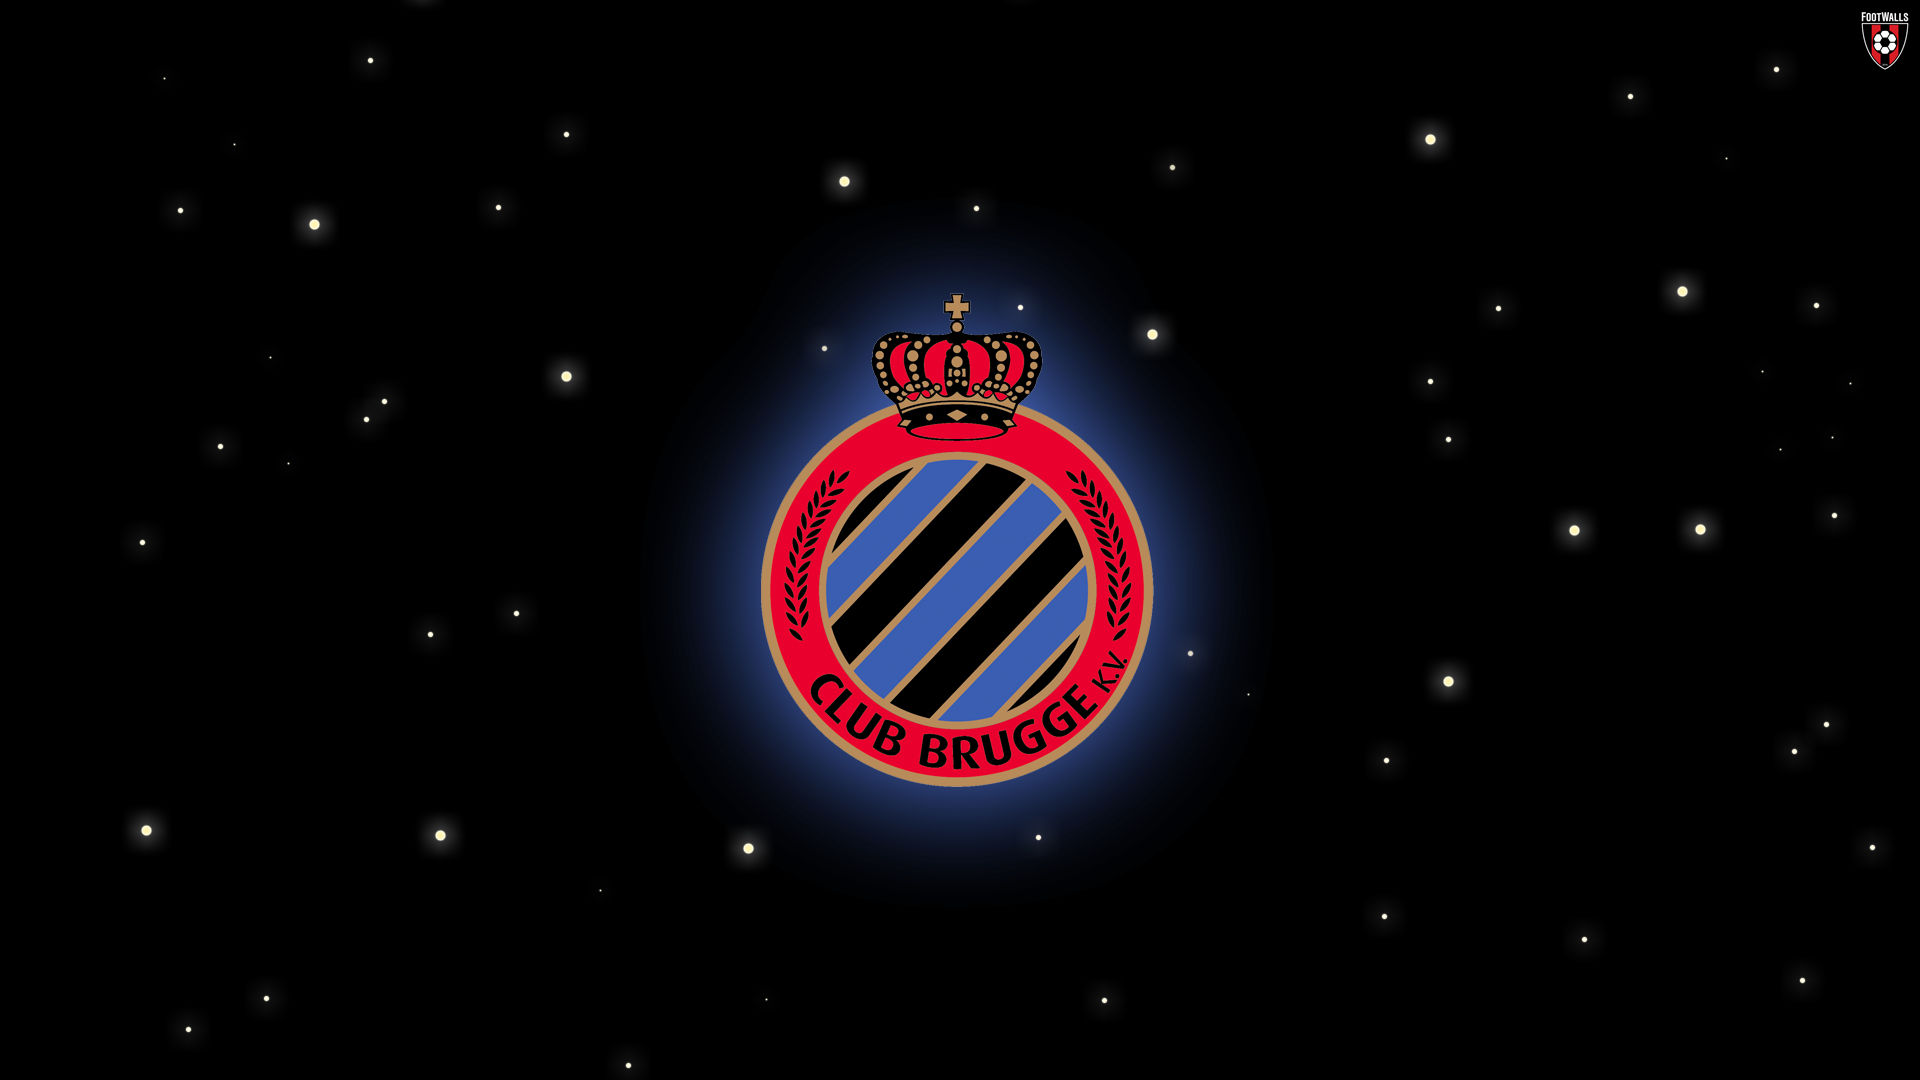 Club Brugge Wallpaper 14 Football Wallpapers